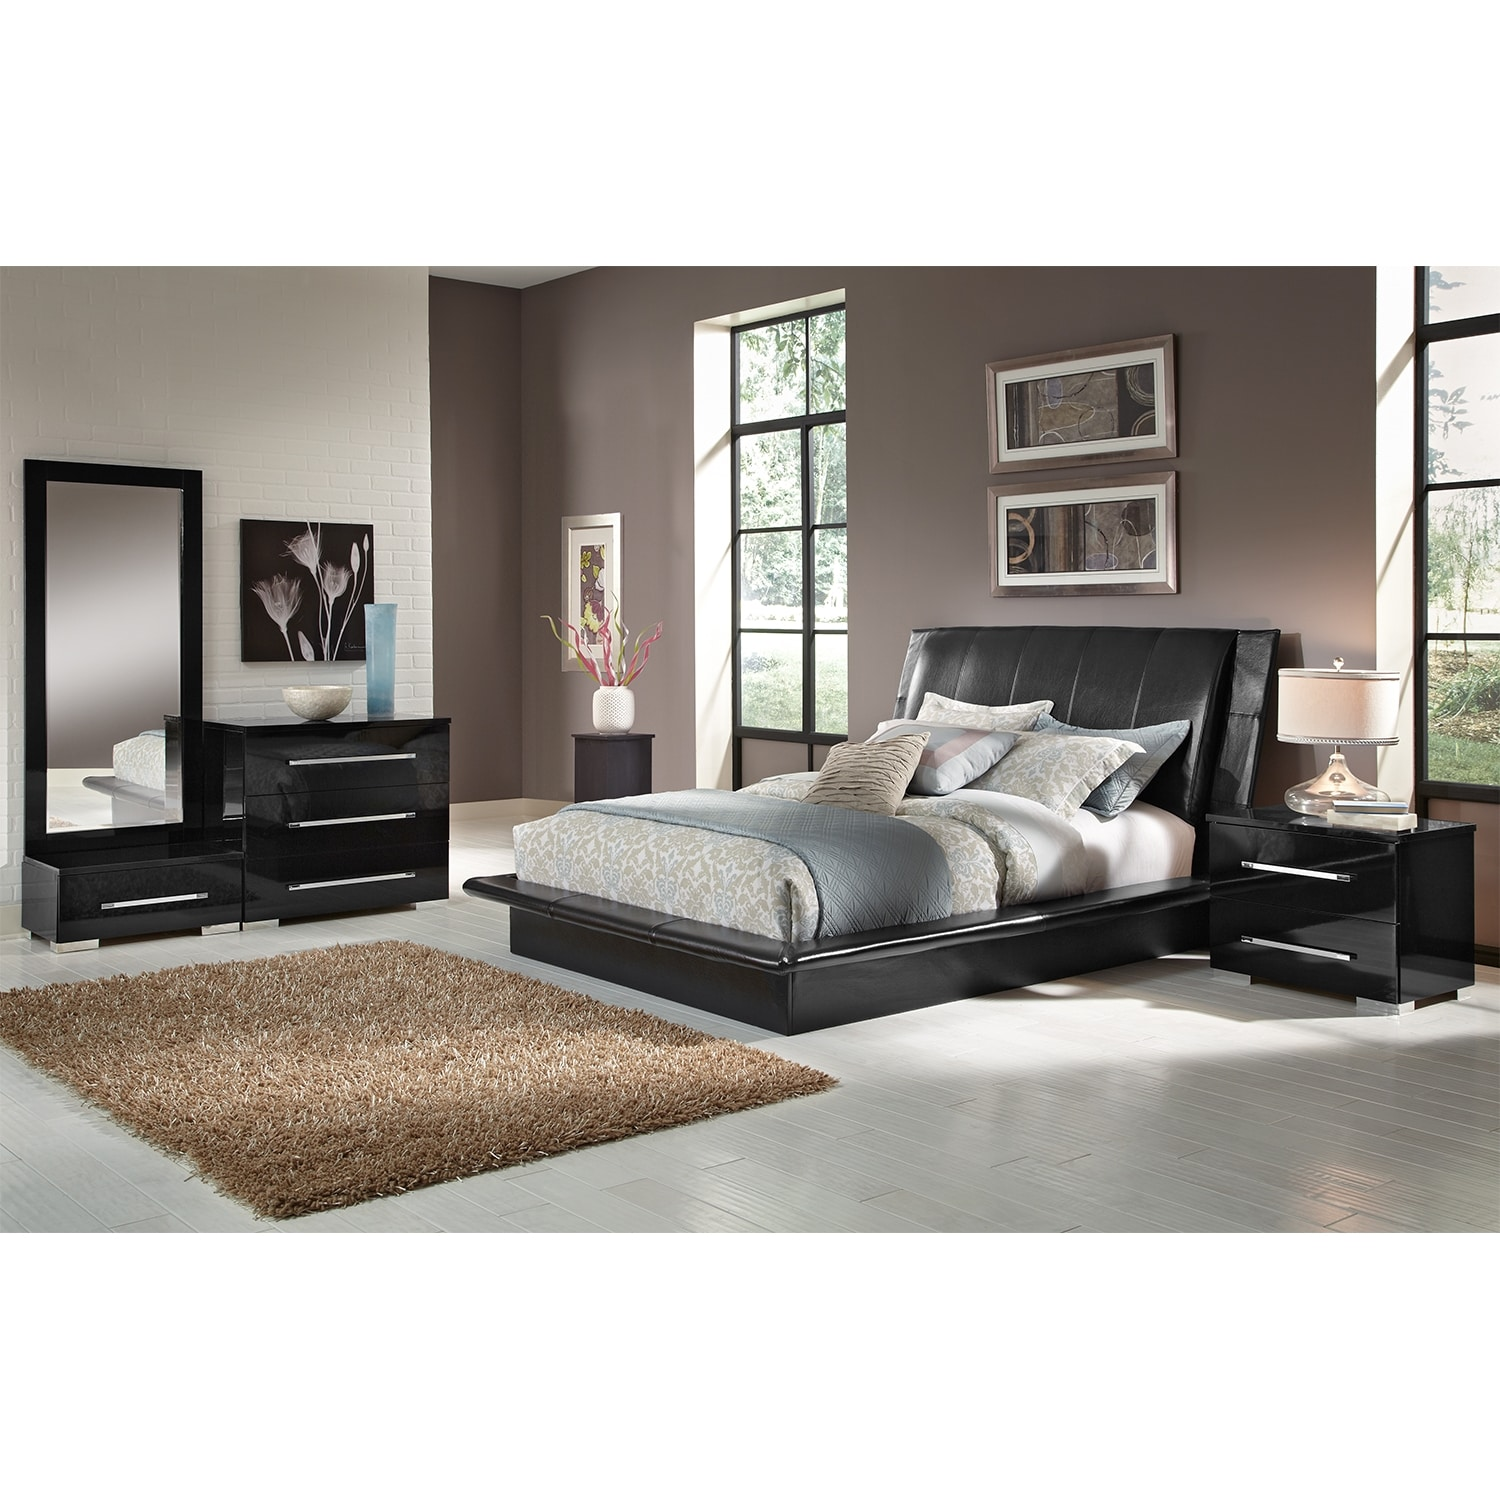 Dimora 6 Piece King Upholstered Bedroom Set Black Value City Furniture